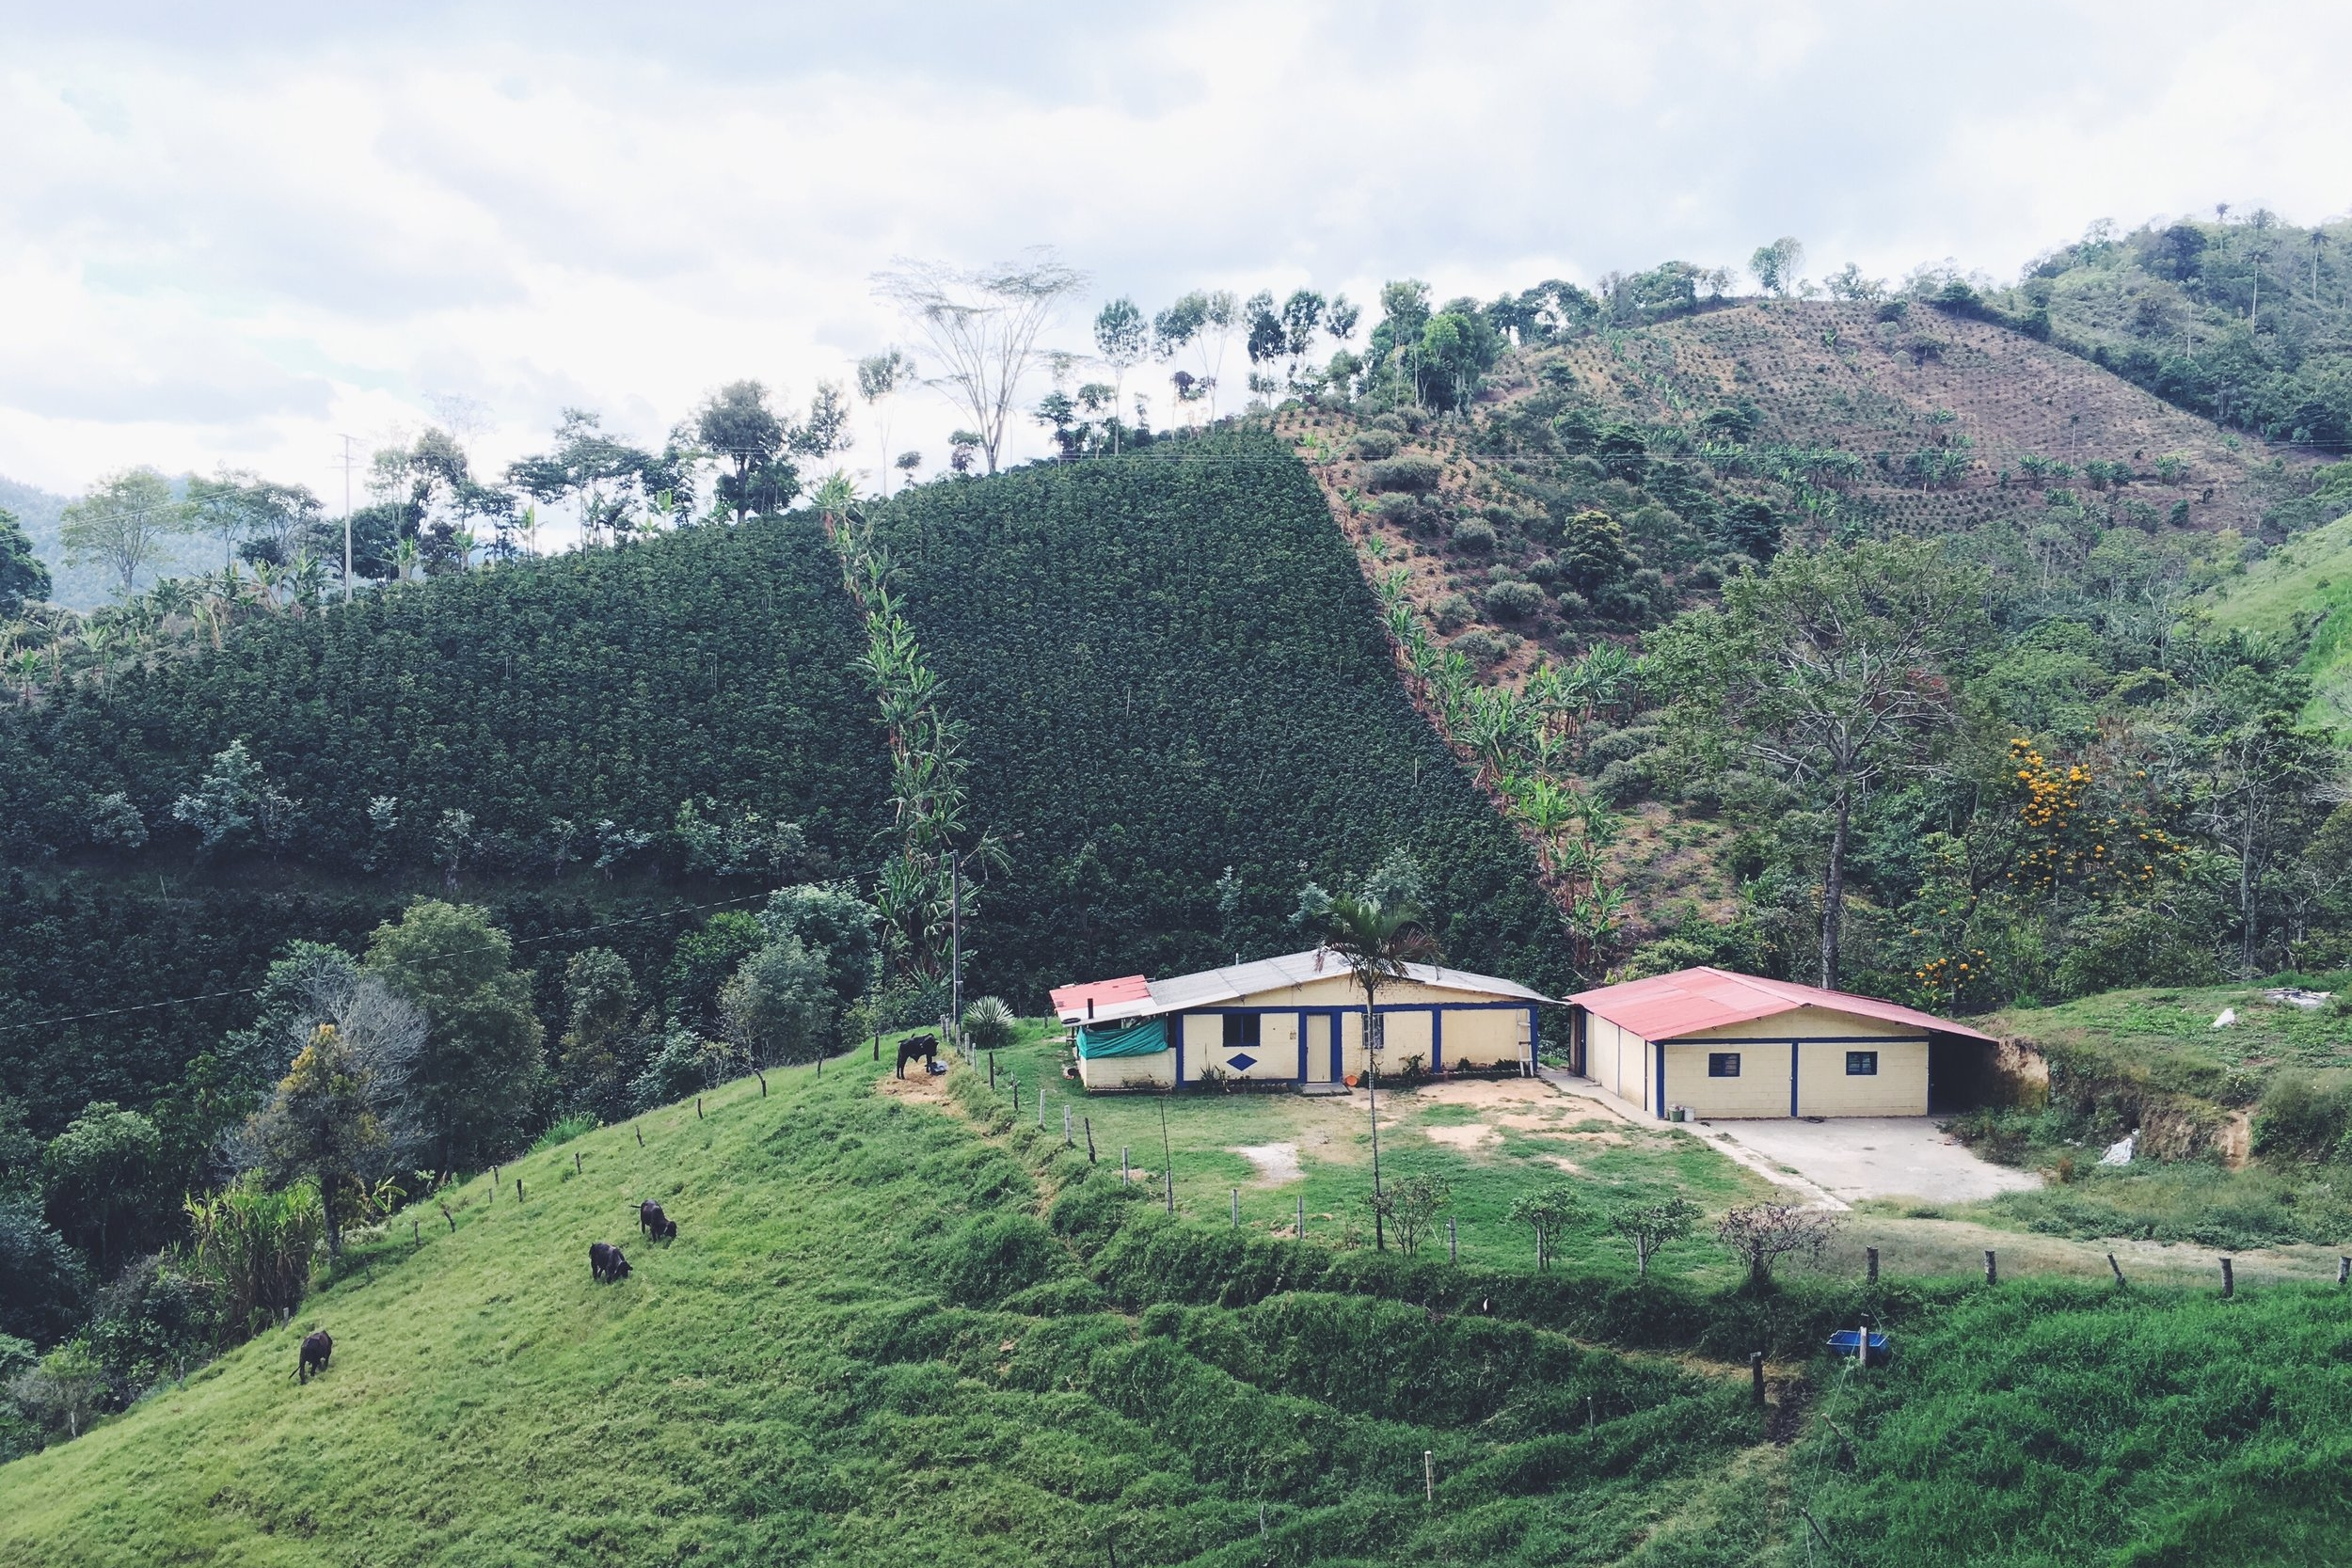 Obelo Coffee farm